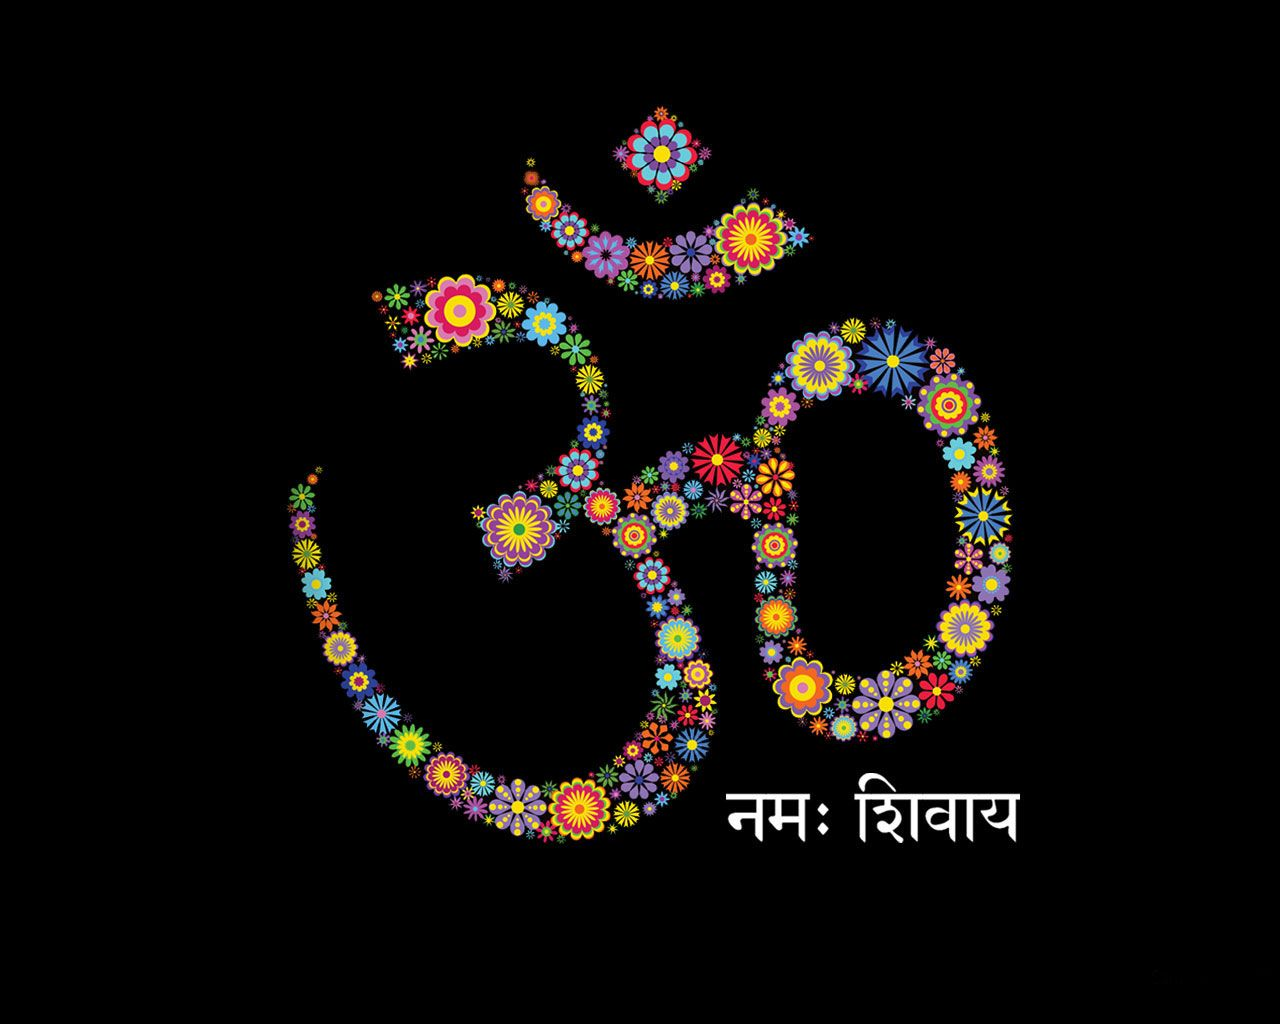 Religious Symbol Om And Its Meaning Om Pinterest Symbols